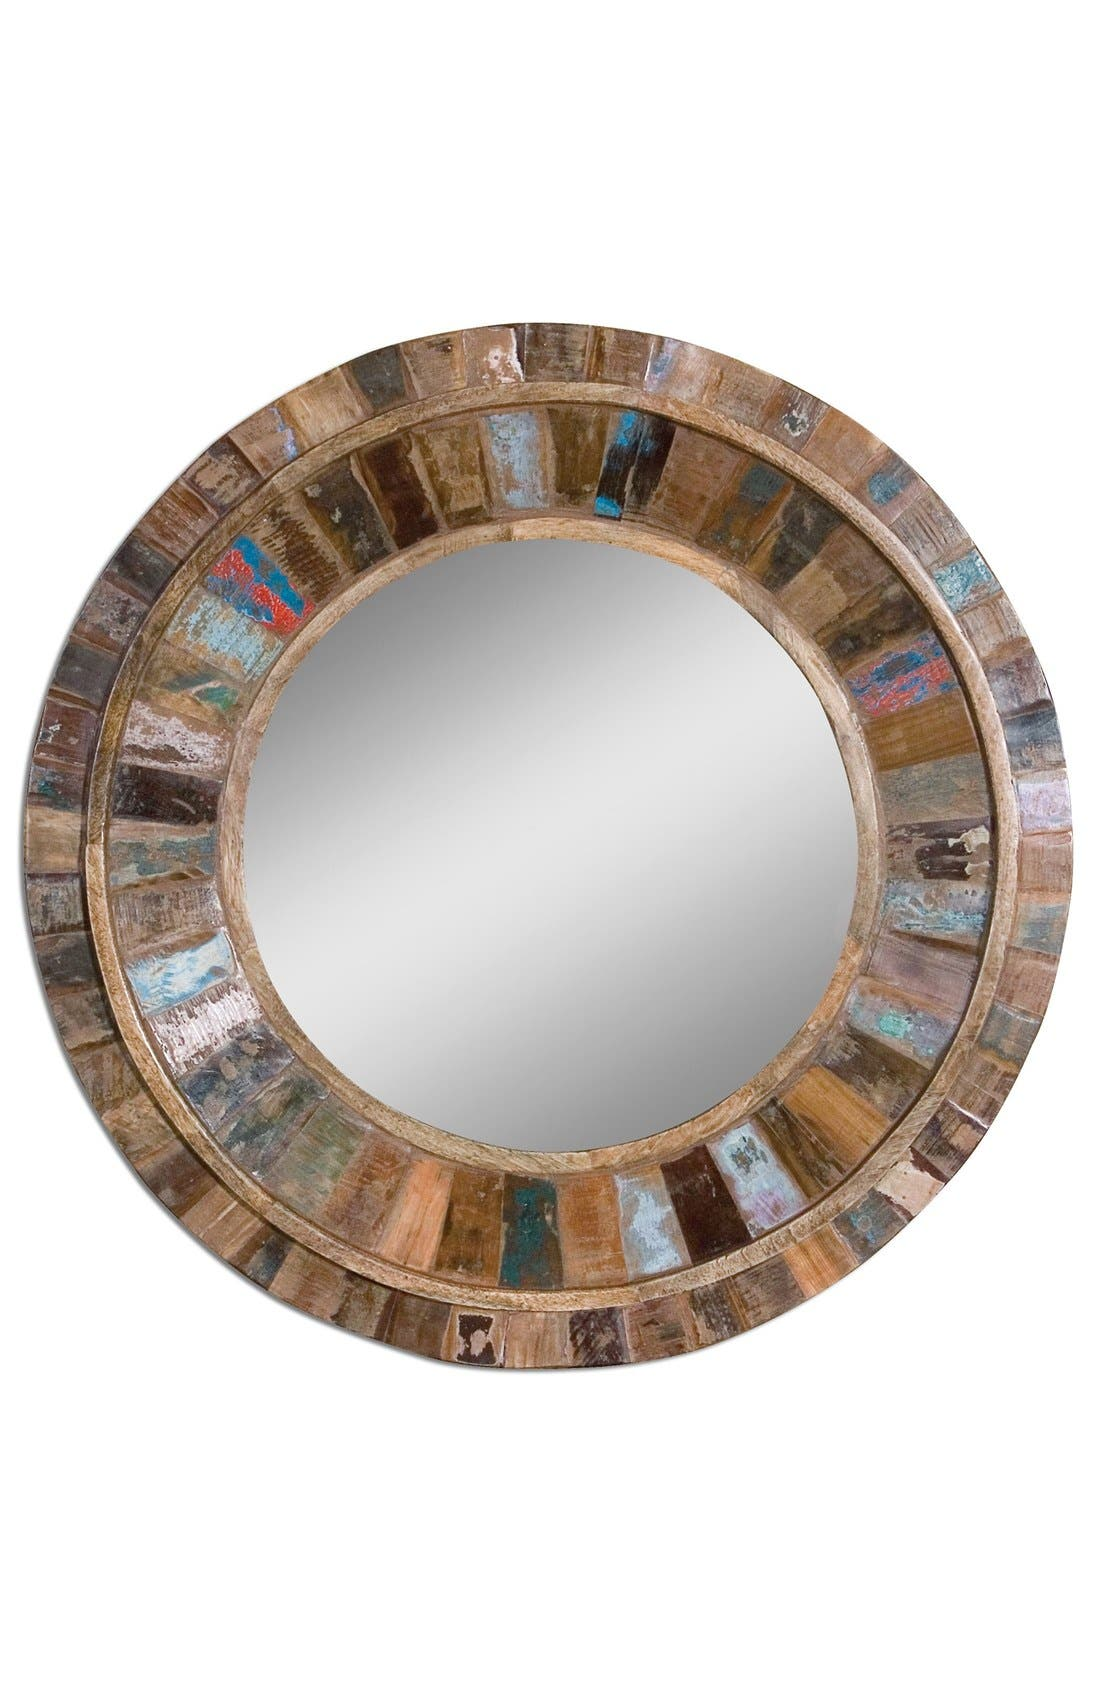 Alternate Image 1 Selected - Uttermost 'Jeremiah' Round Wooden Wall Mirror